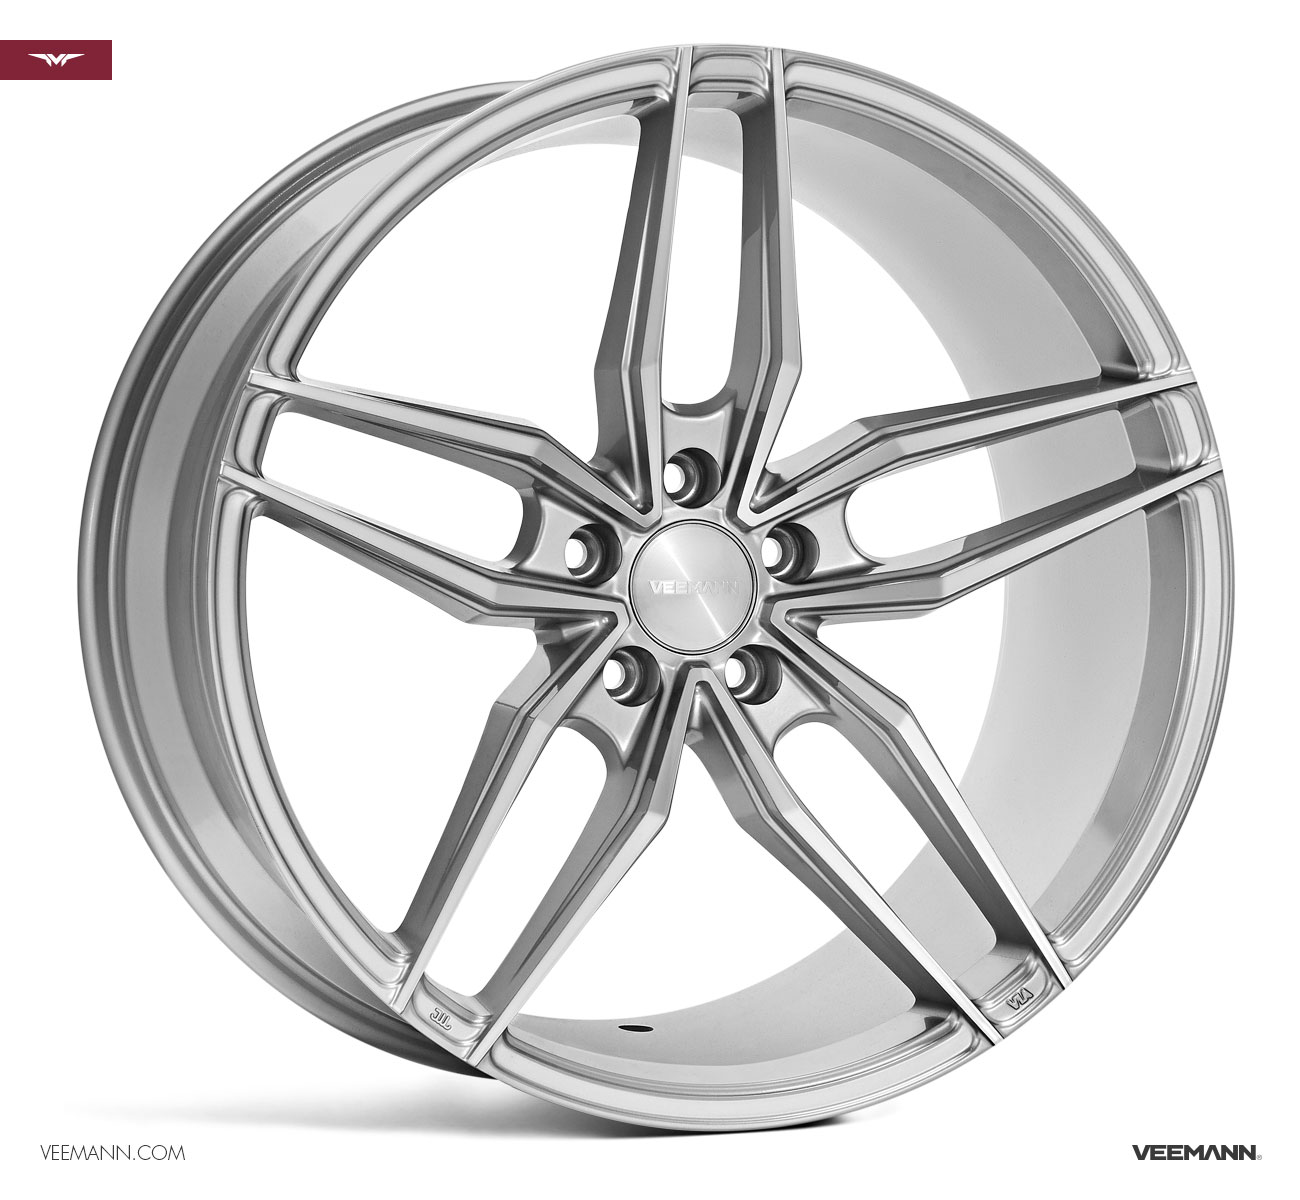 "NEW 20"" VEEMANN V-FS37 ALLOY WHEELS IN SILVER POL WITH WIDER 10"" REAR"